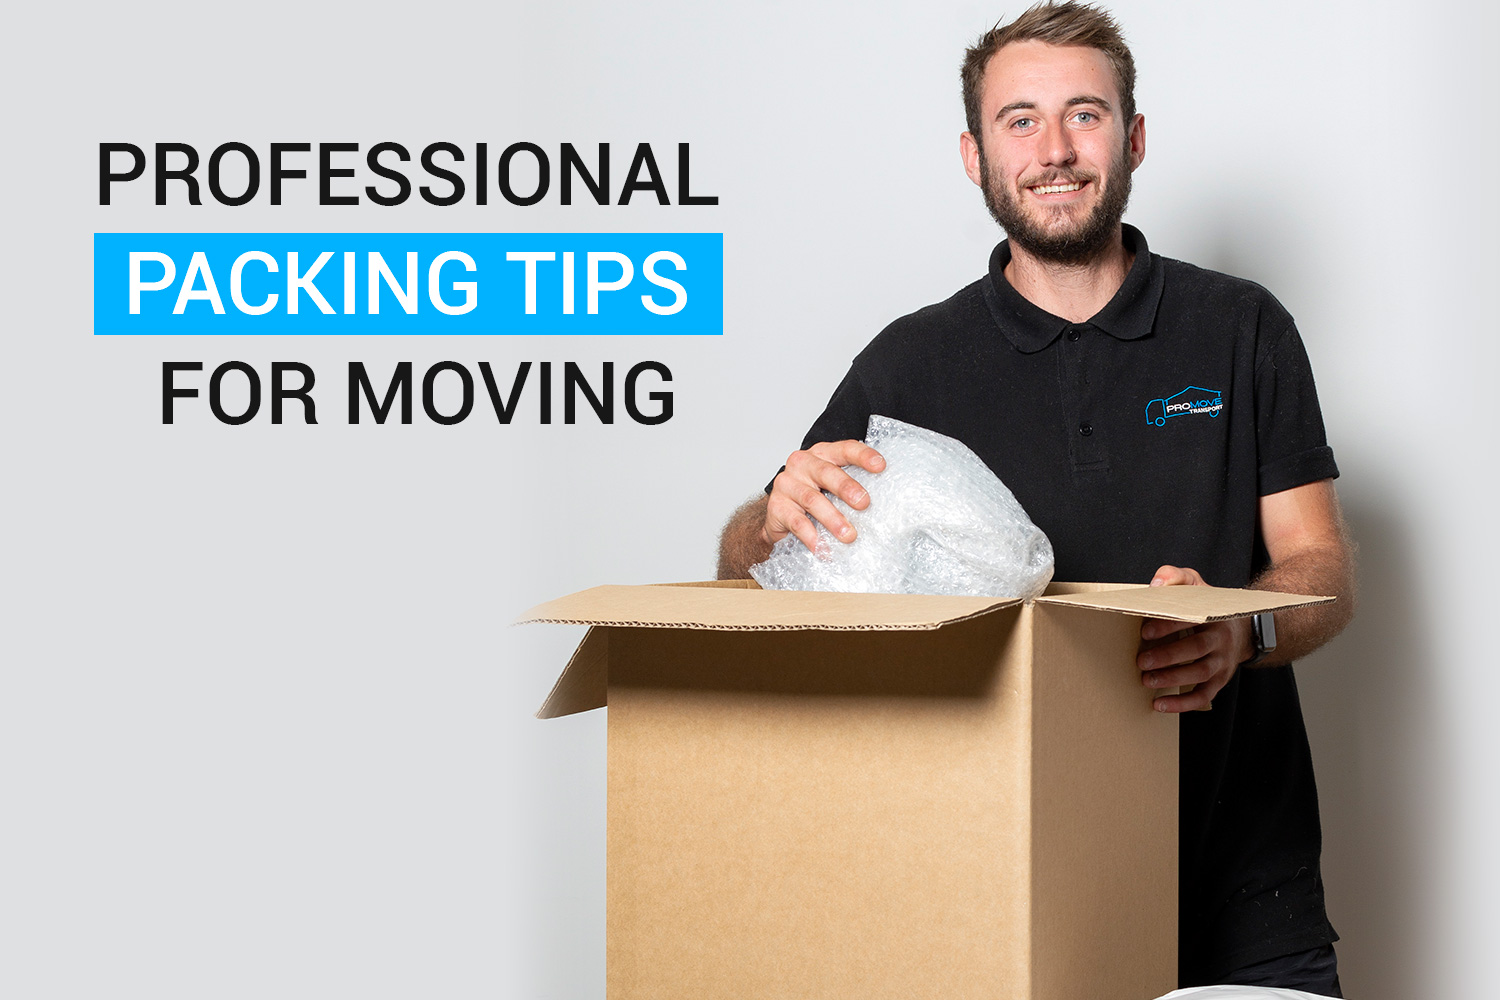 Professional Packing Tips for Moving: How to Pack Kitchen Items Like a Pro